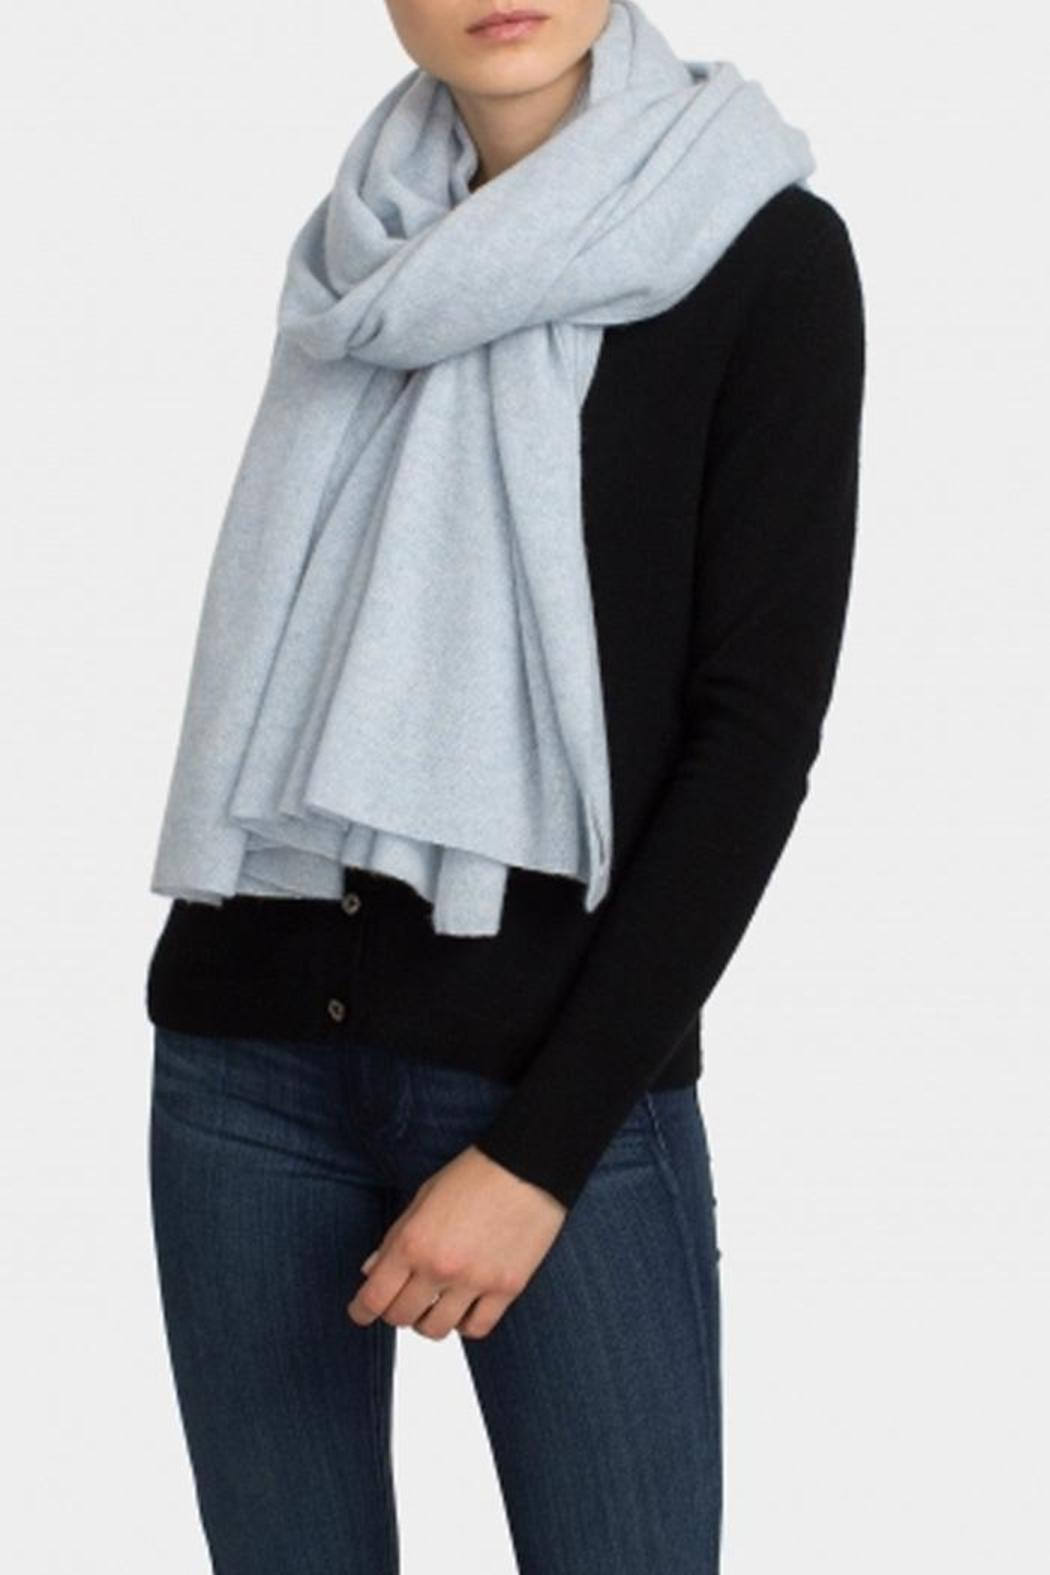 cashmere floral embroidered scarf - Black Cashmere in Love